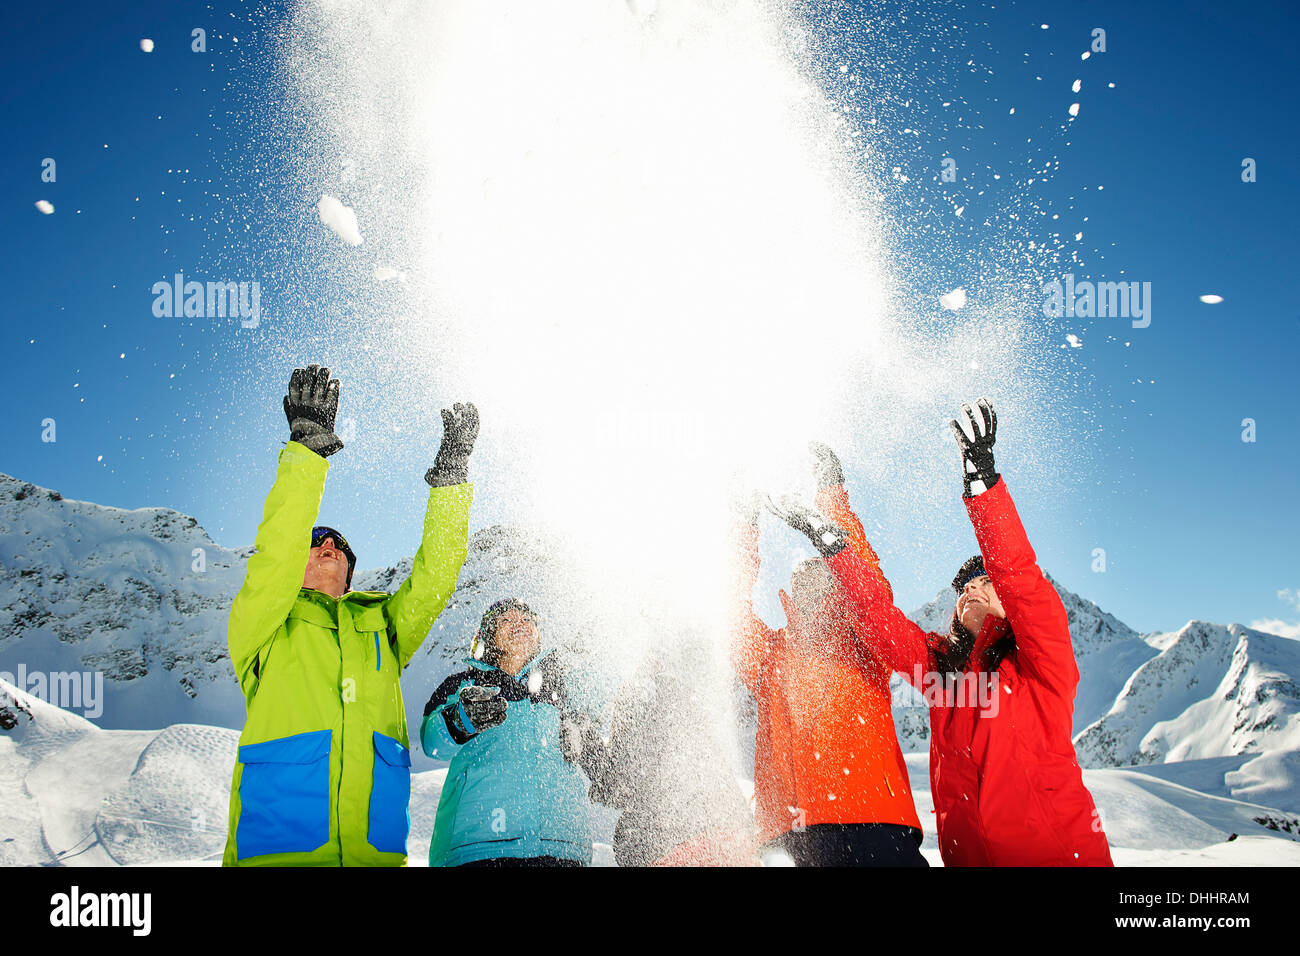 Les amis throwing snow mid air, Kuhtai, Autriche Photo Stock